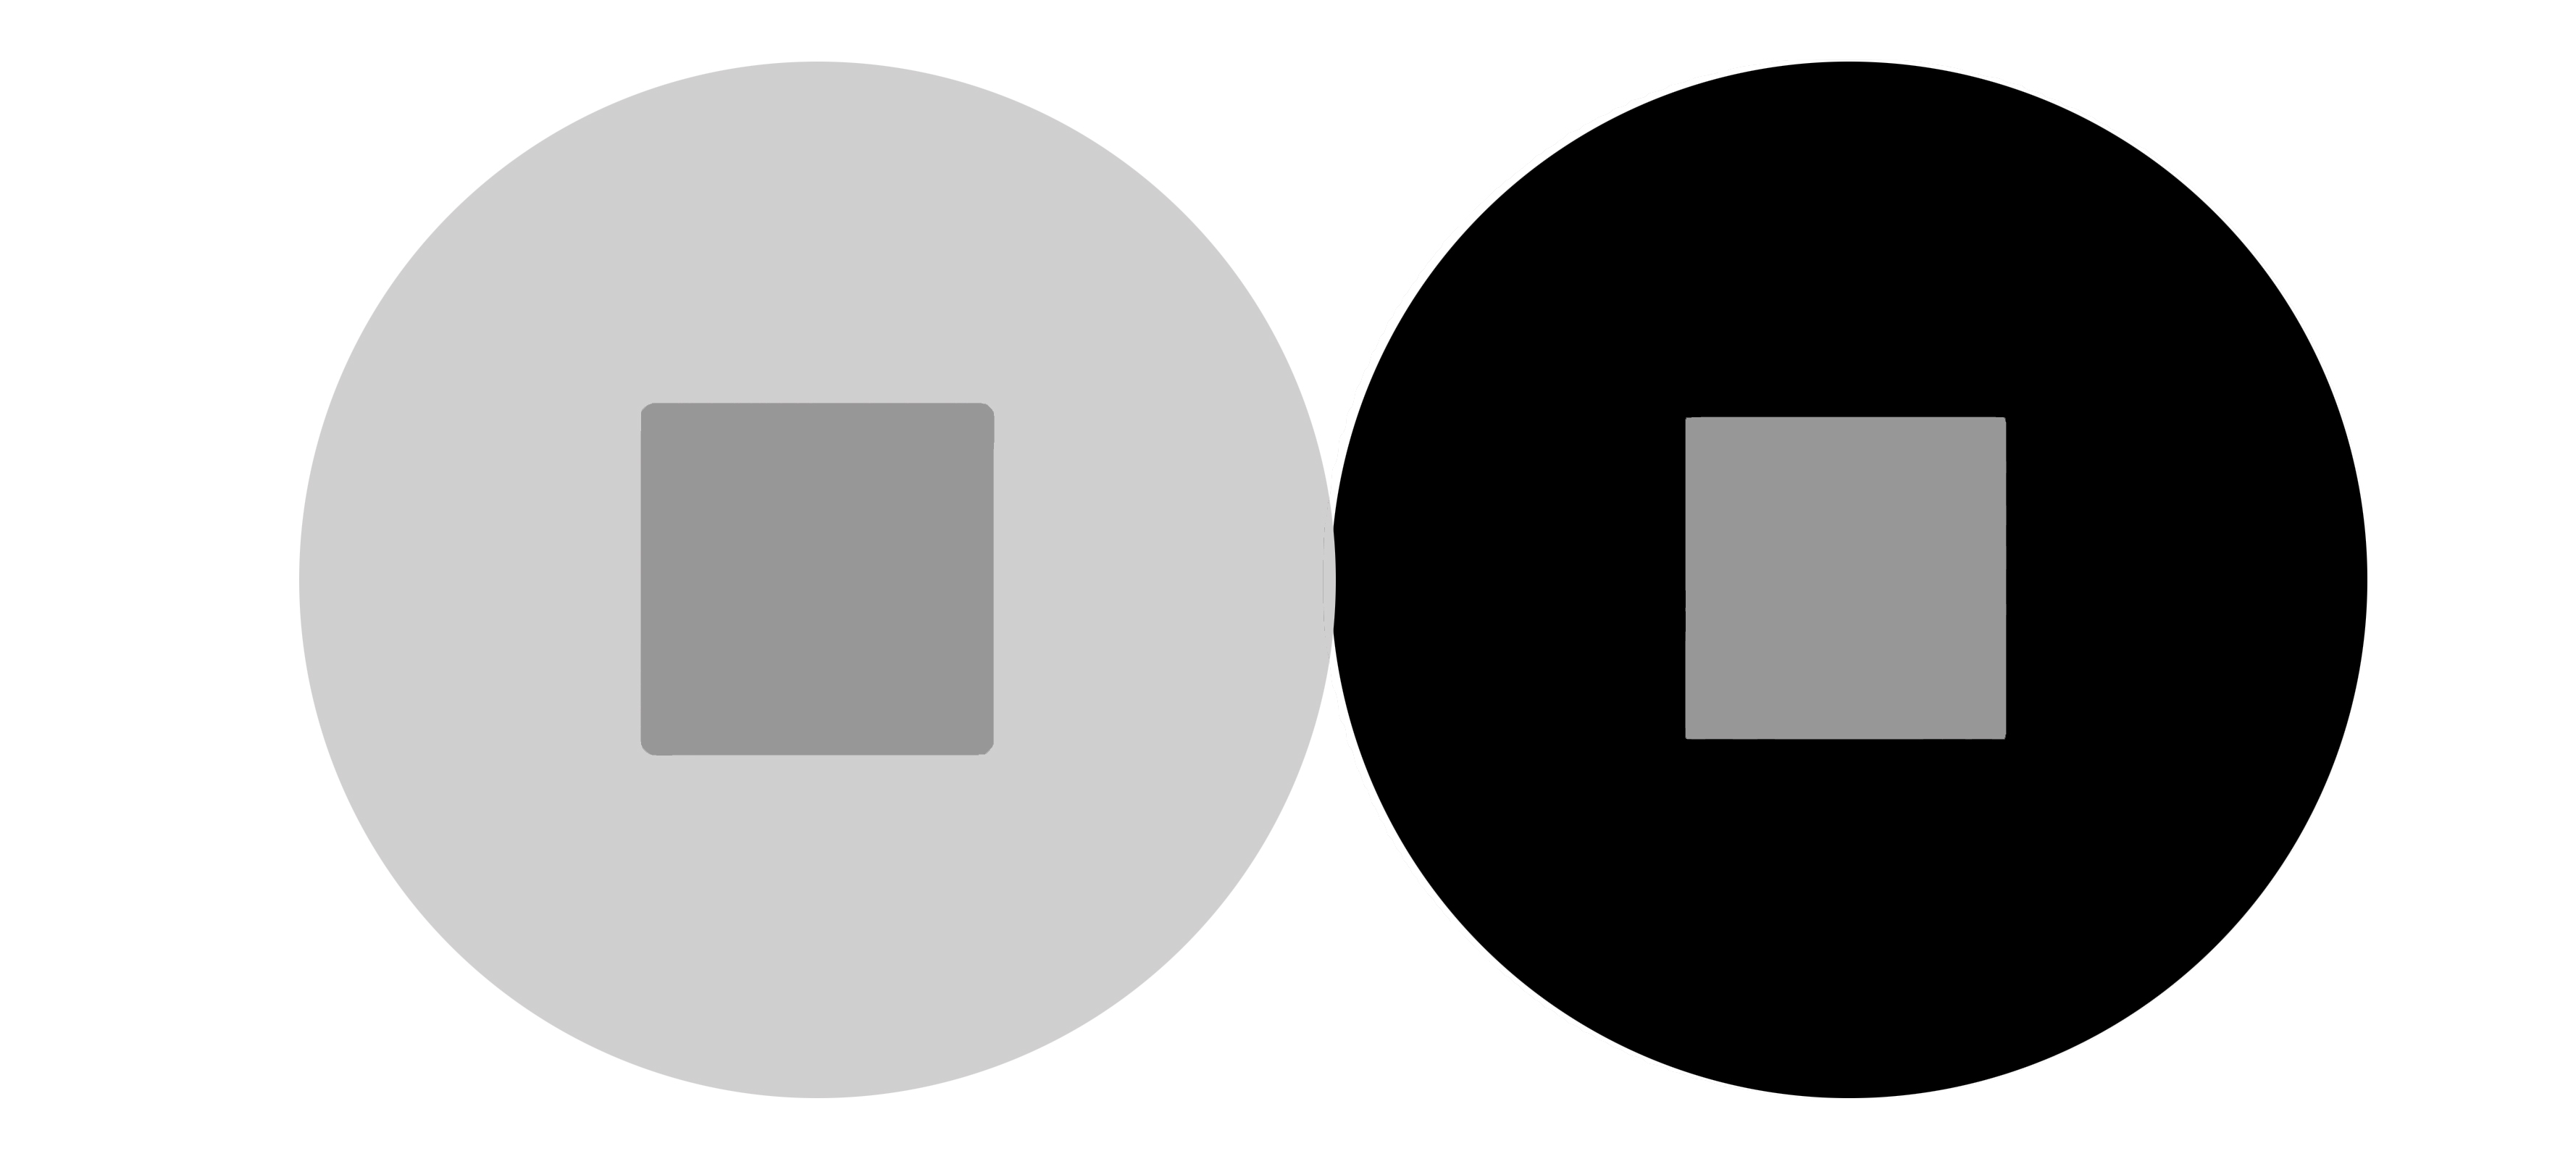 Graphic of a contrast test